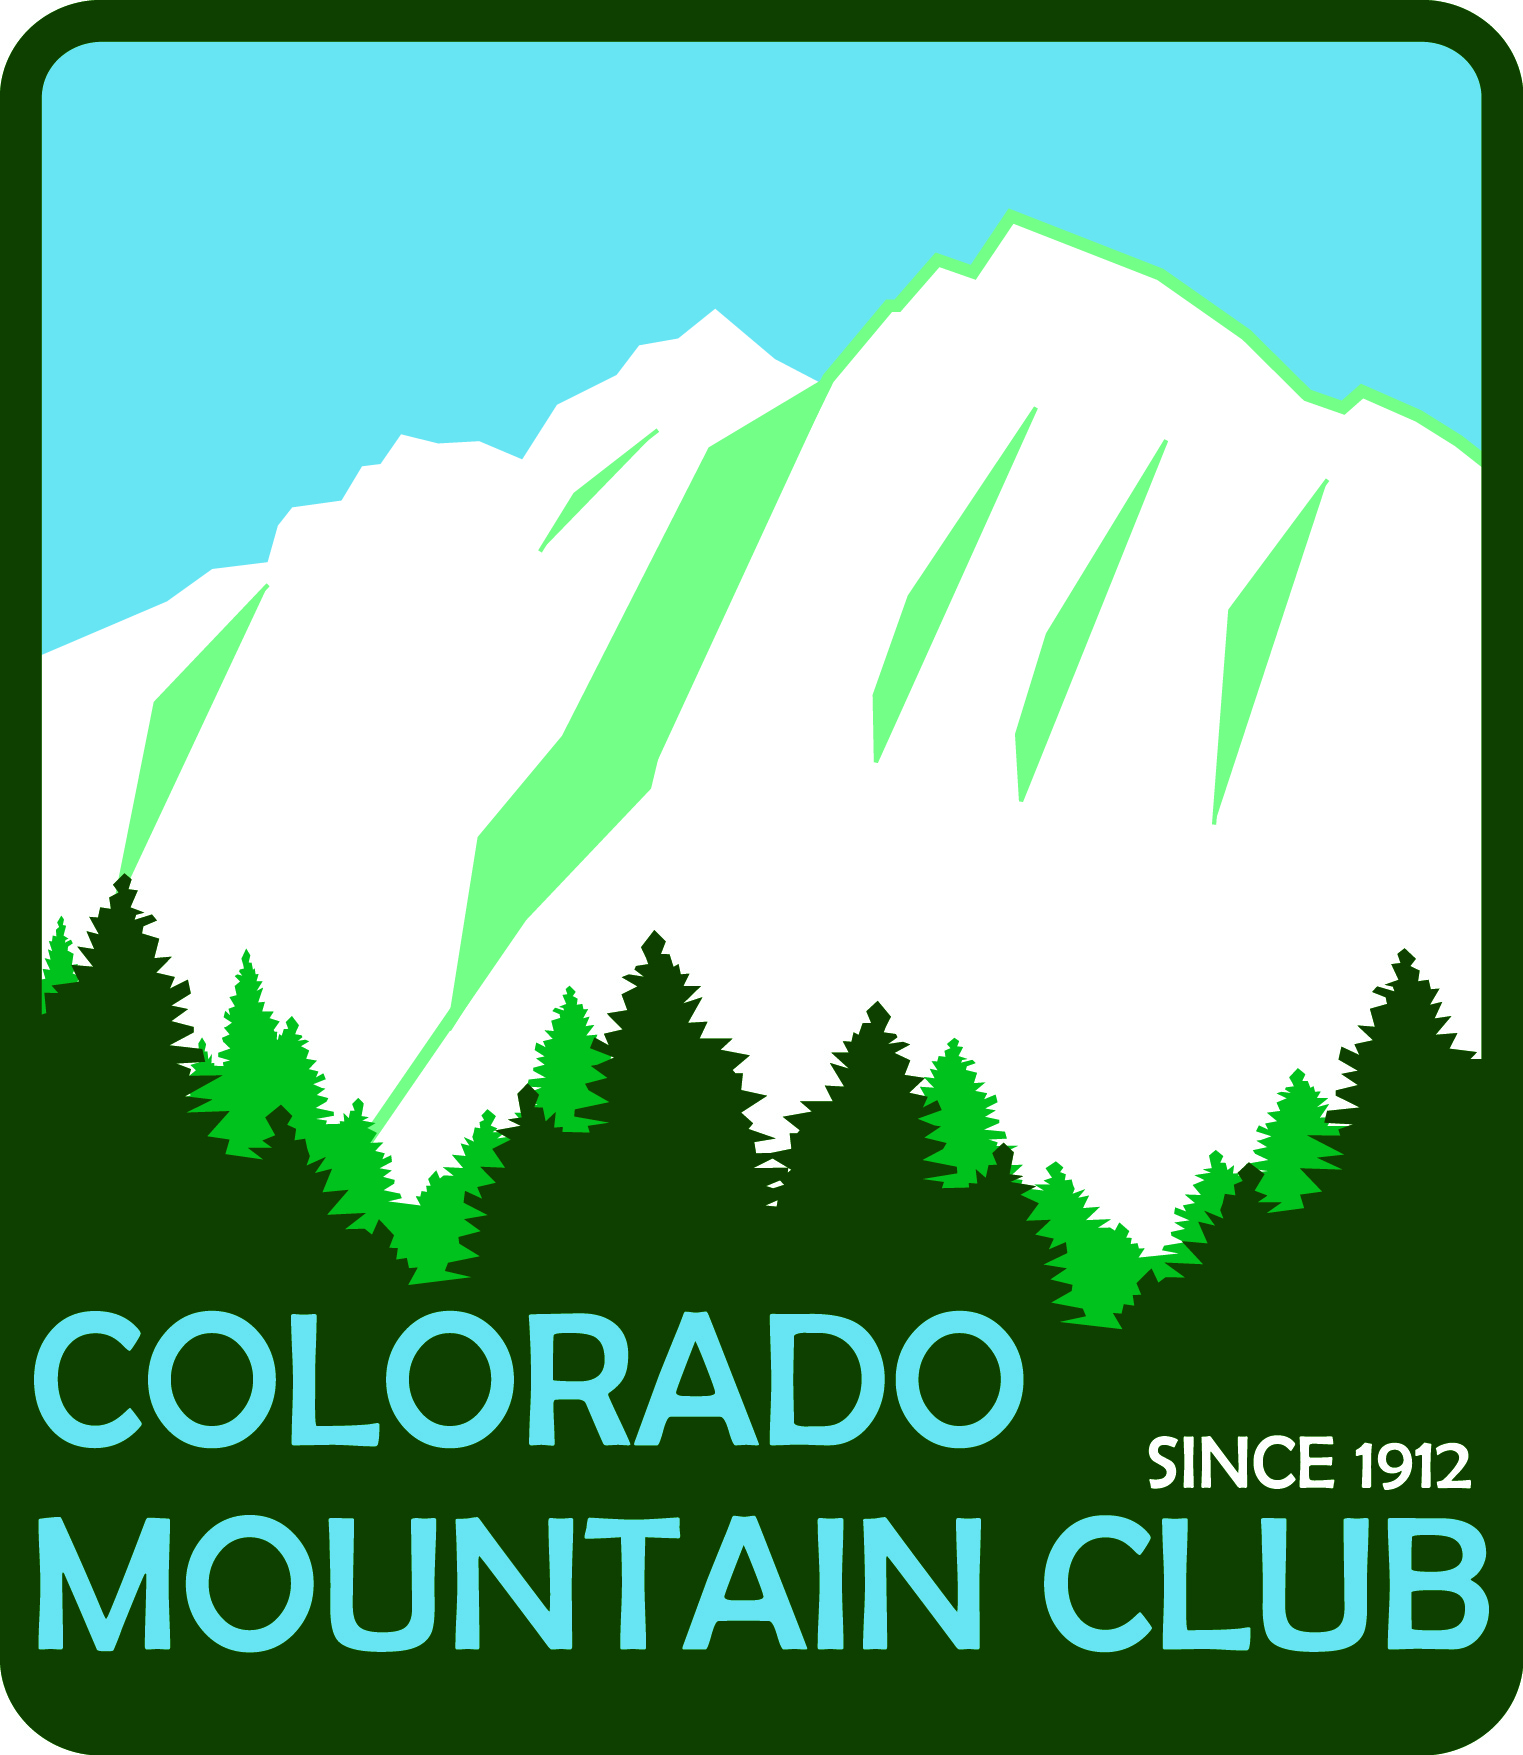 Colorado Mountain Club logo